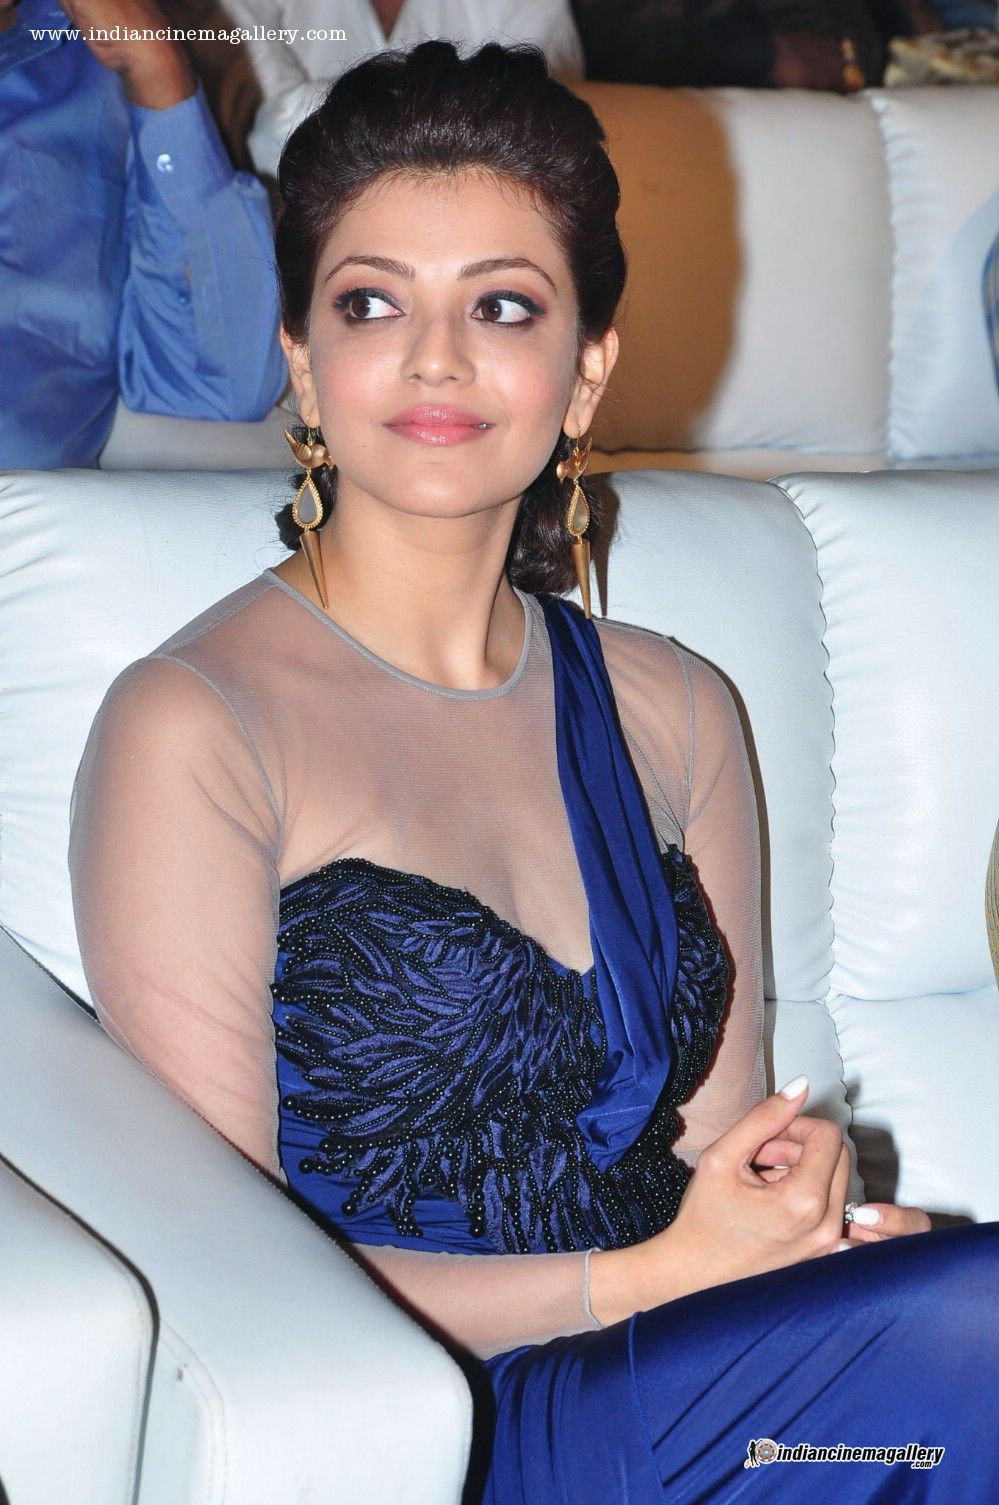 Kajal dress less images of love